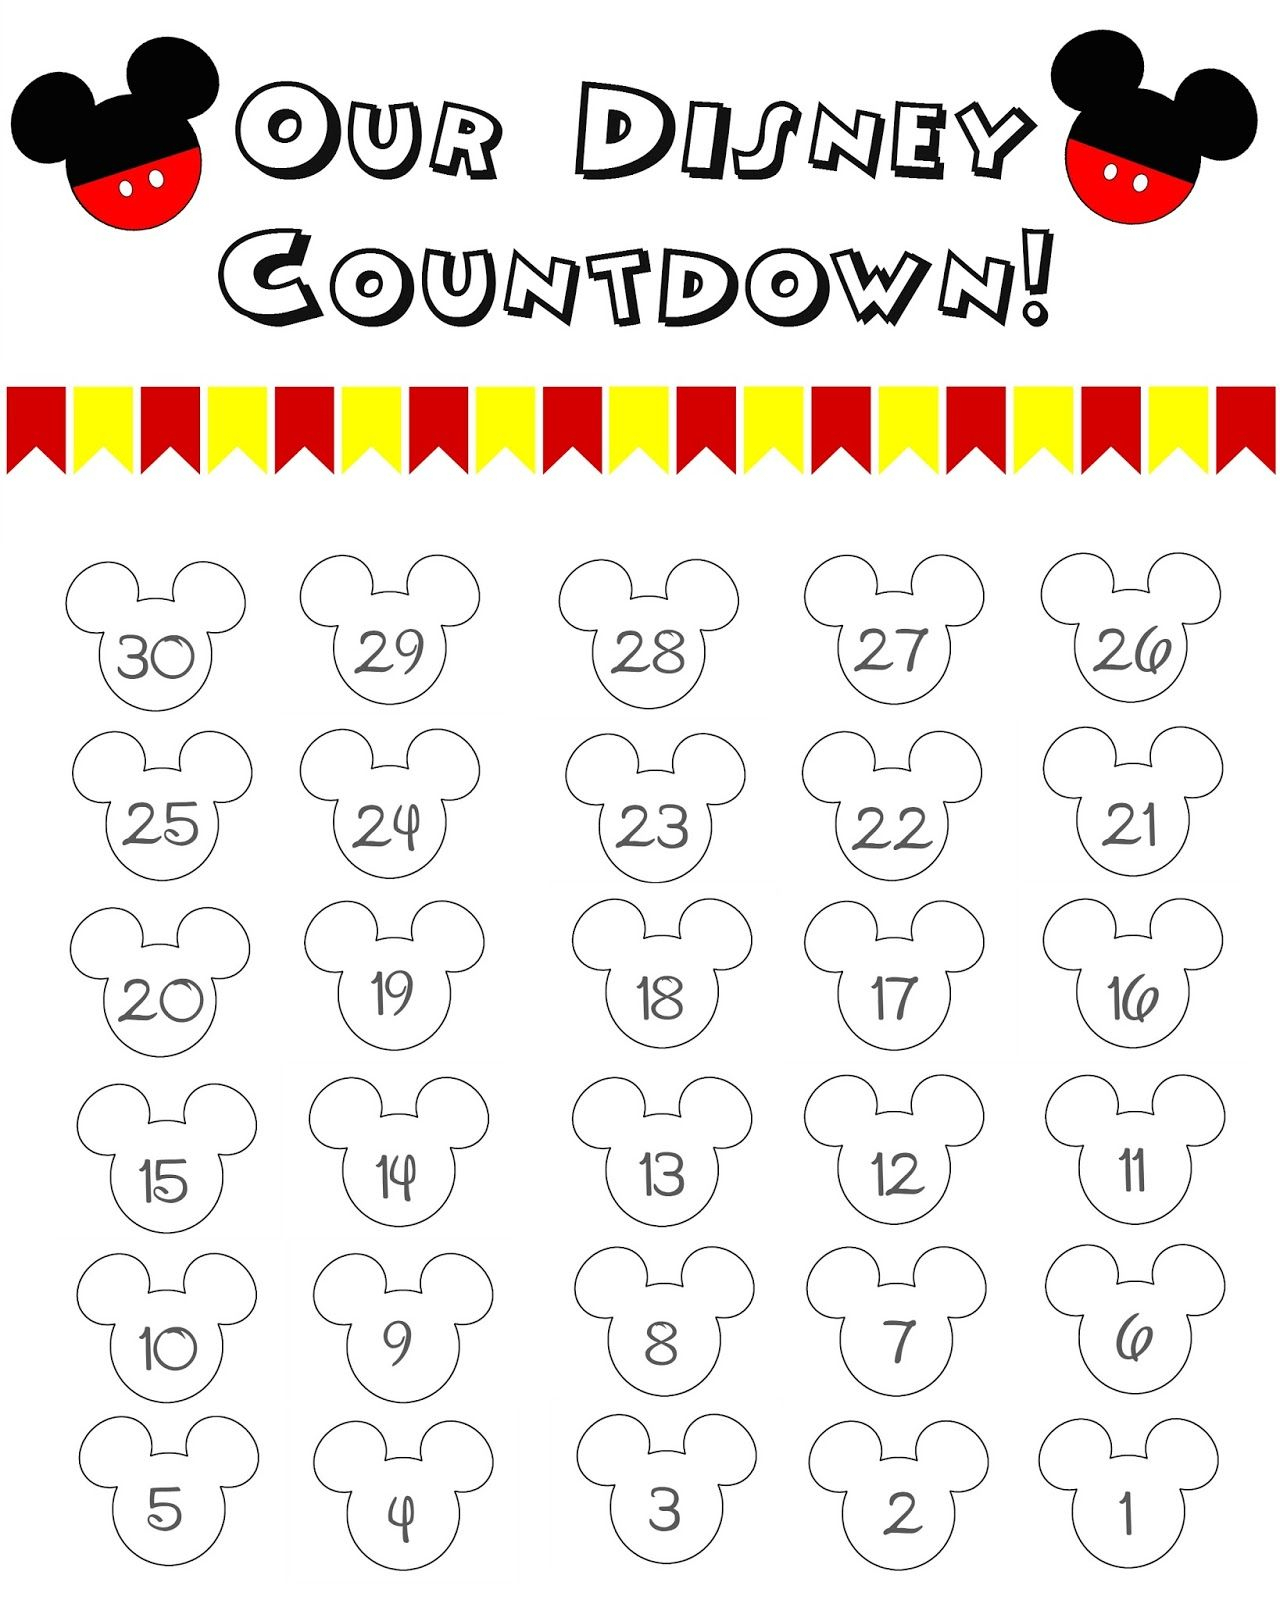 Disney World Countdown Calendar - Free Printable | The Momma